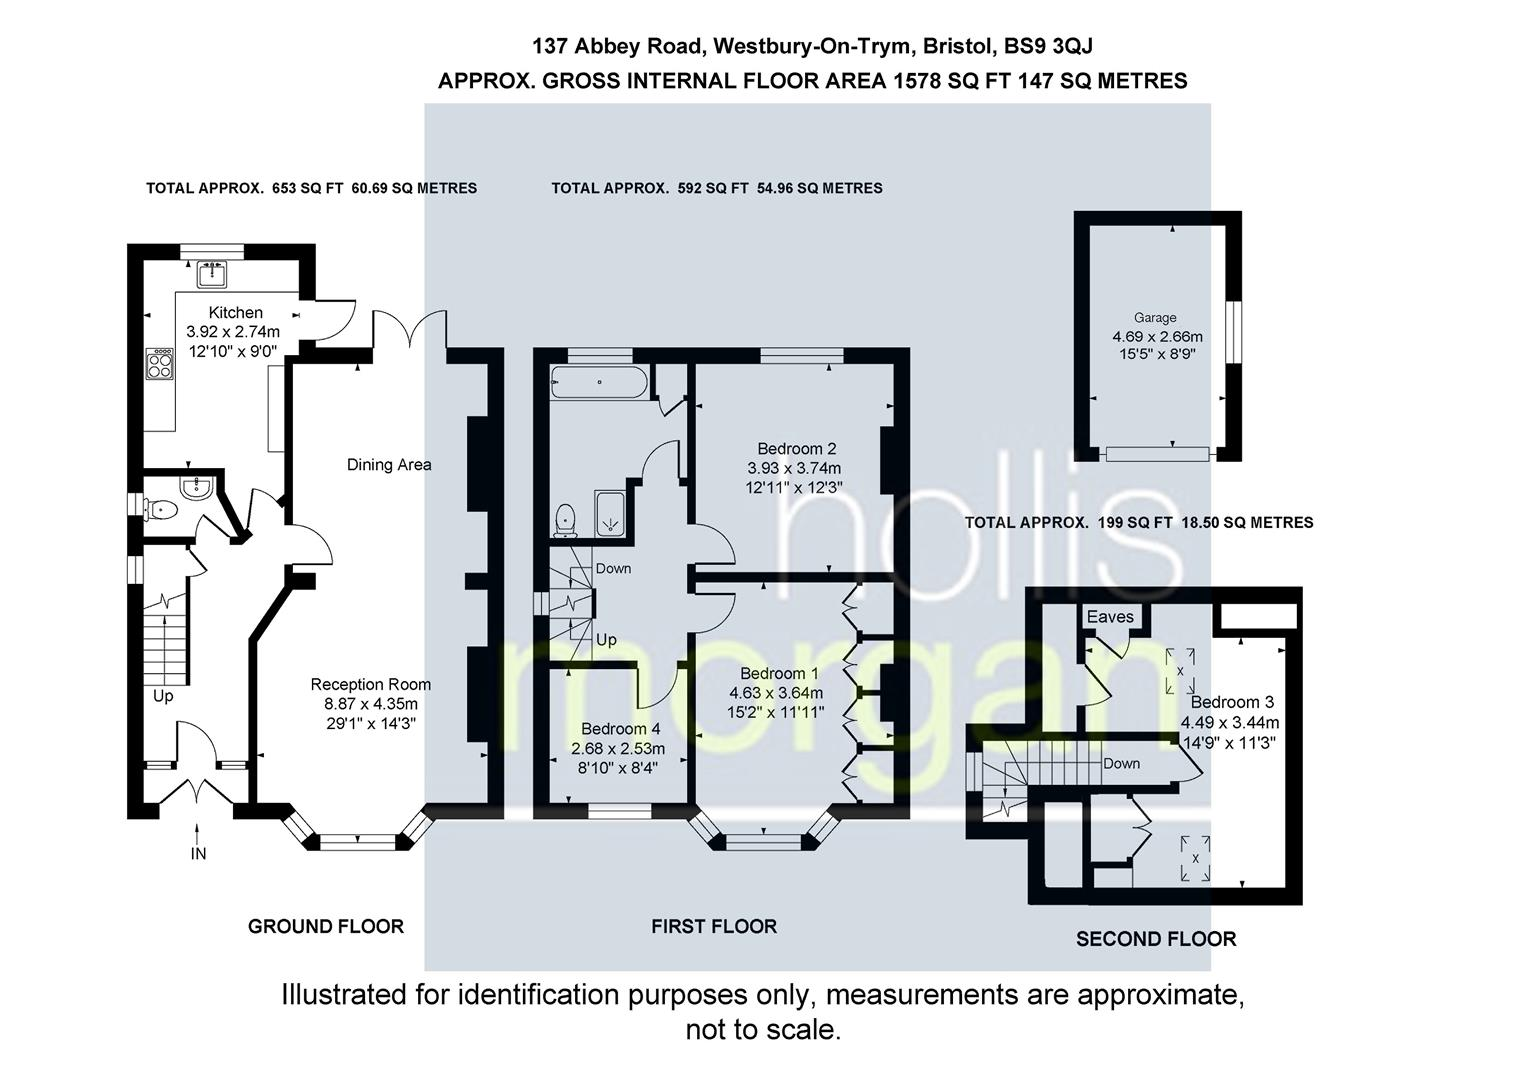 Floorplans For Abbey Road, Westbury-On-Trym